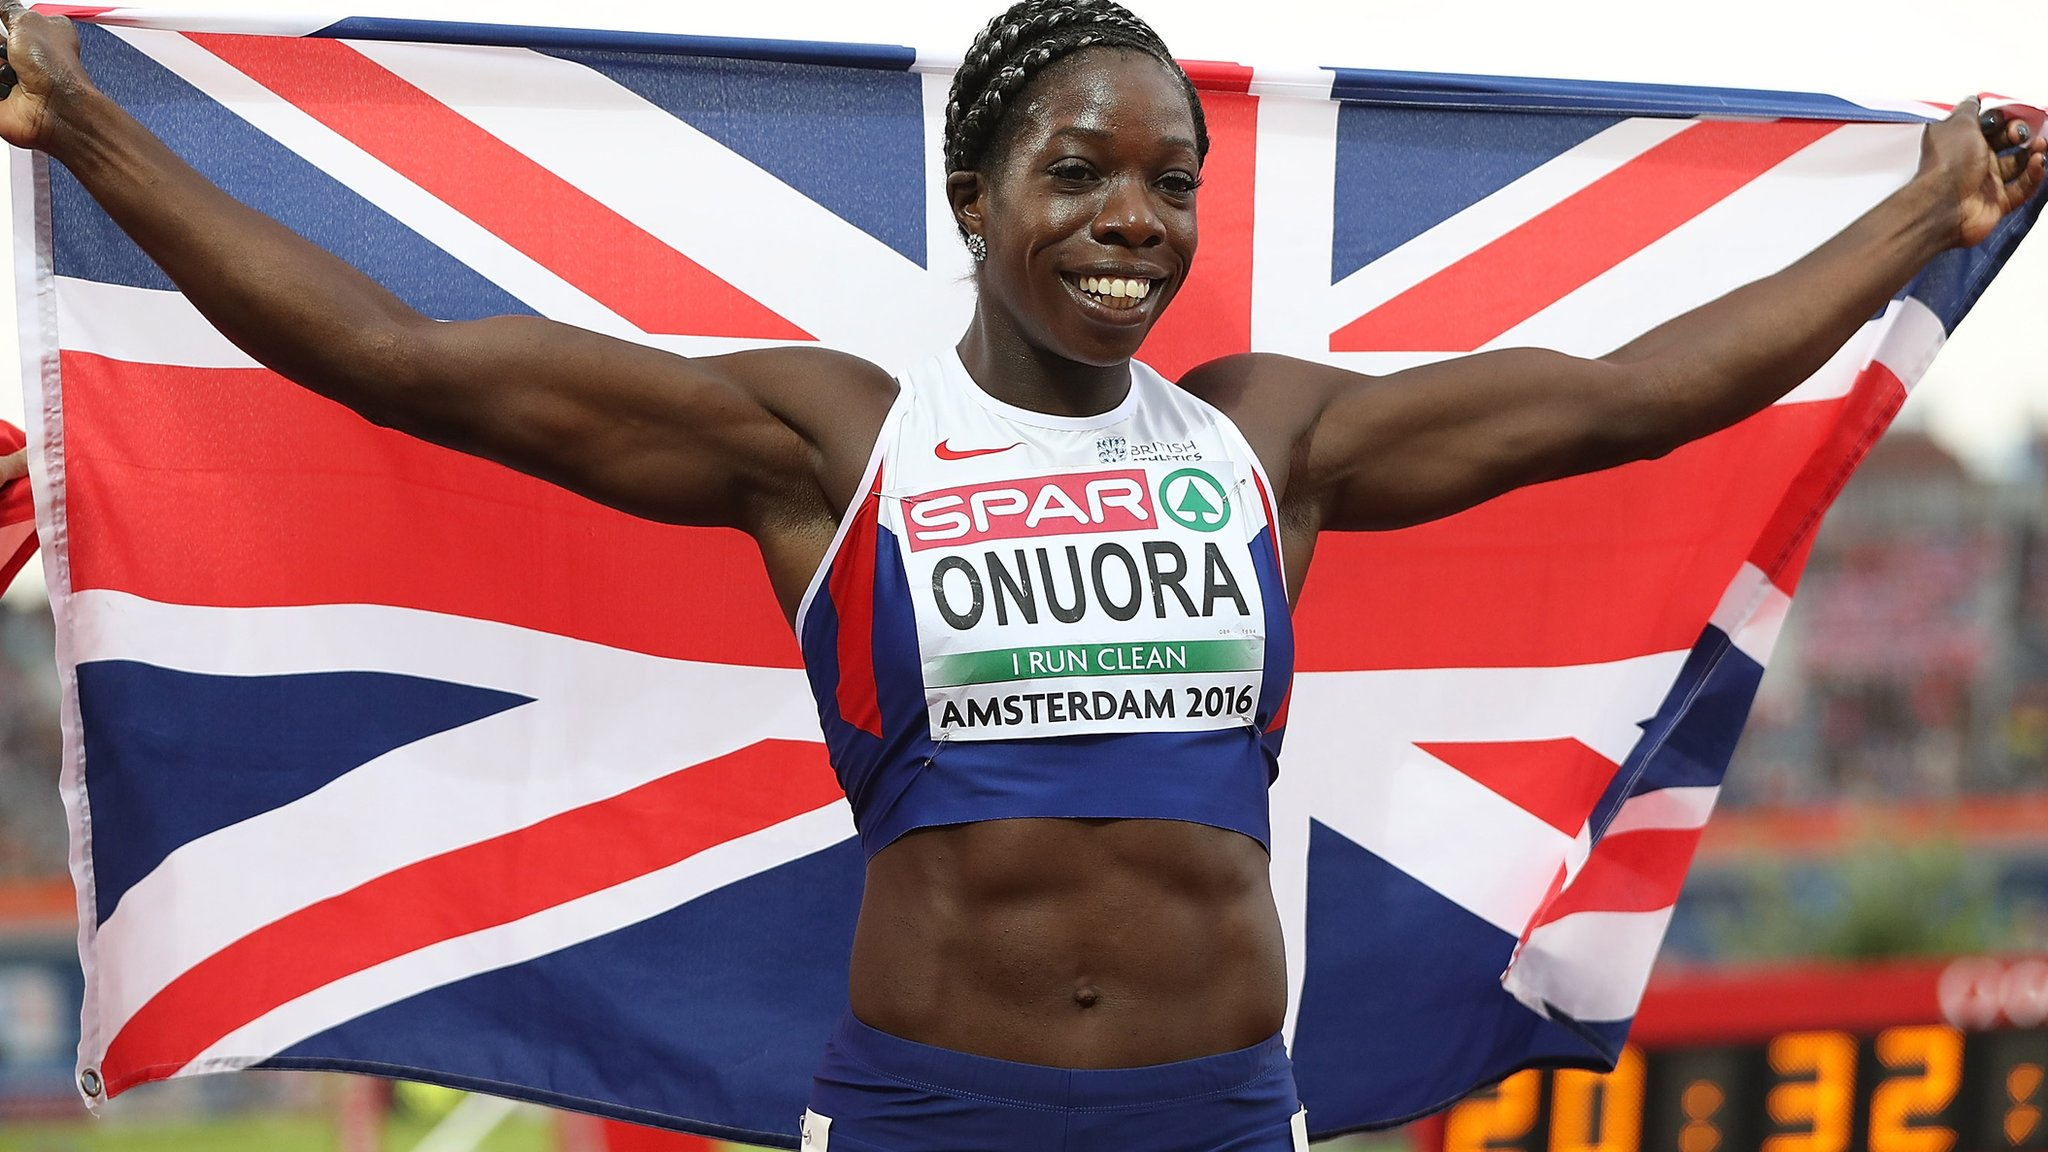 Anyika Onuora: Olympic medallist on body image confidence issues as a young athlete